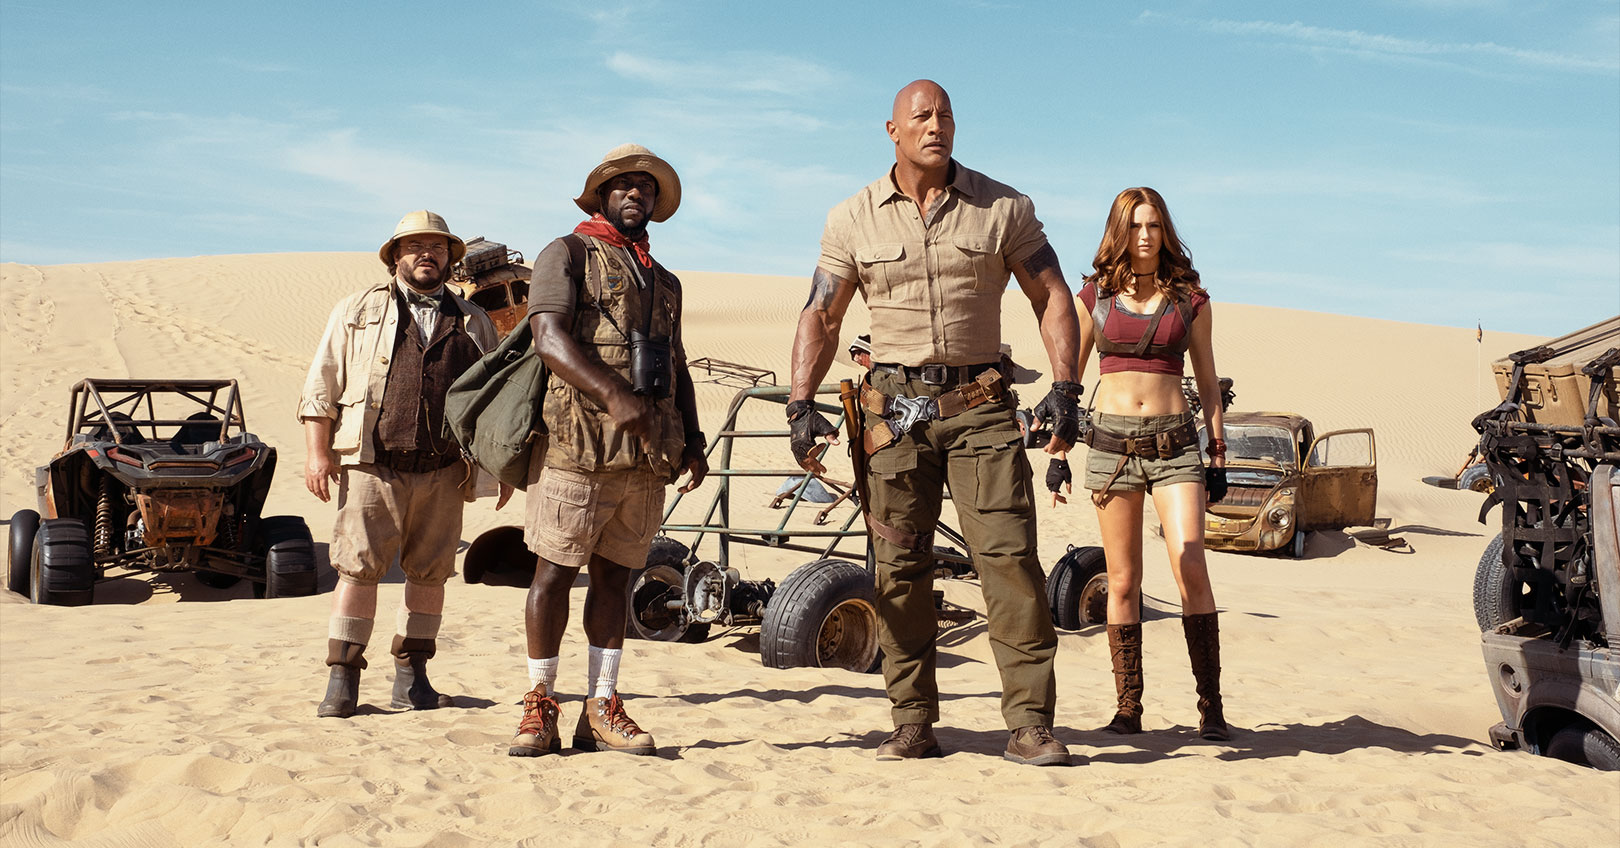 Jumanji: The Next Level - Jack Black, Kevin Hart, Dwayne Johnson, and Karen Gillan